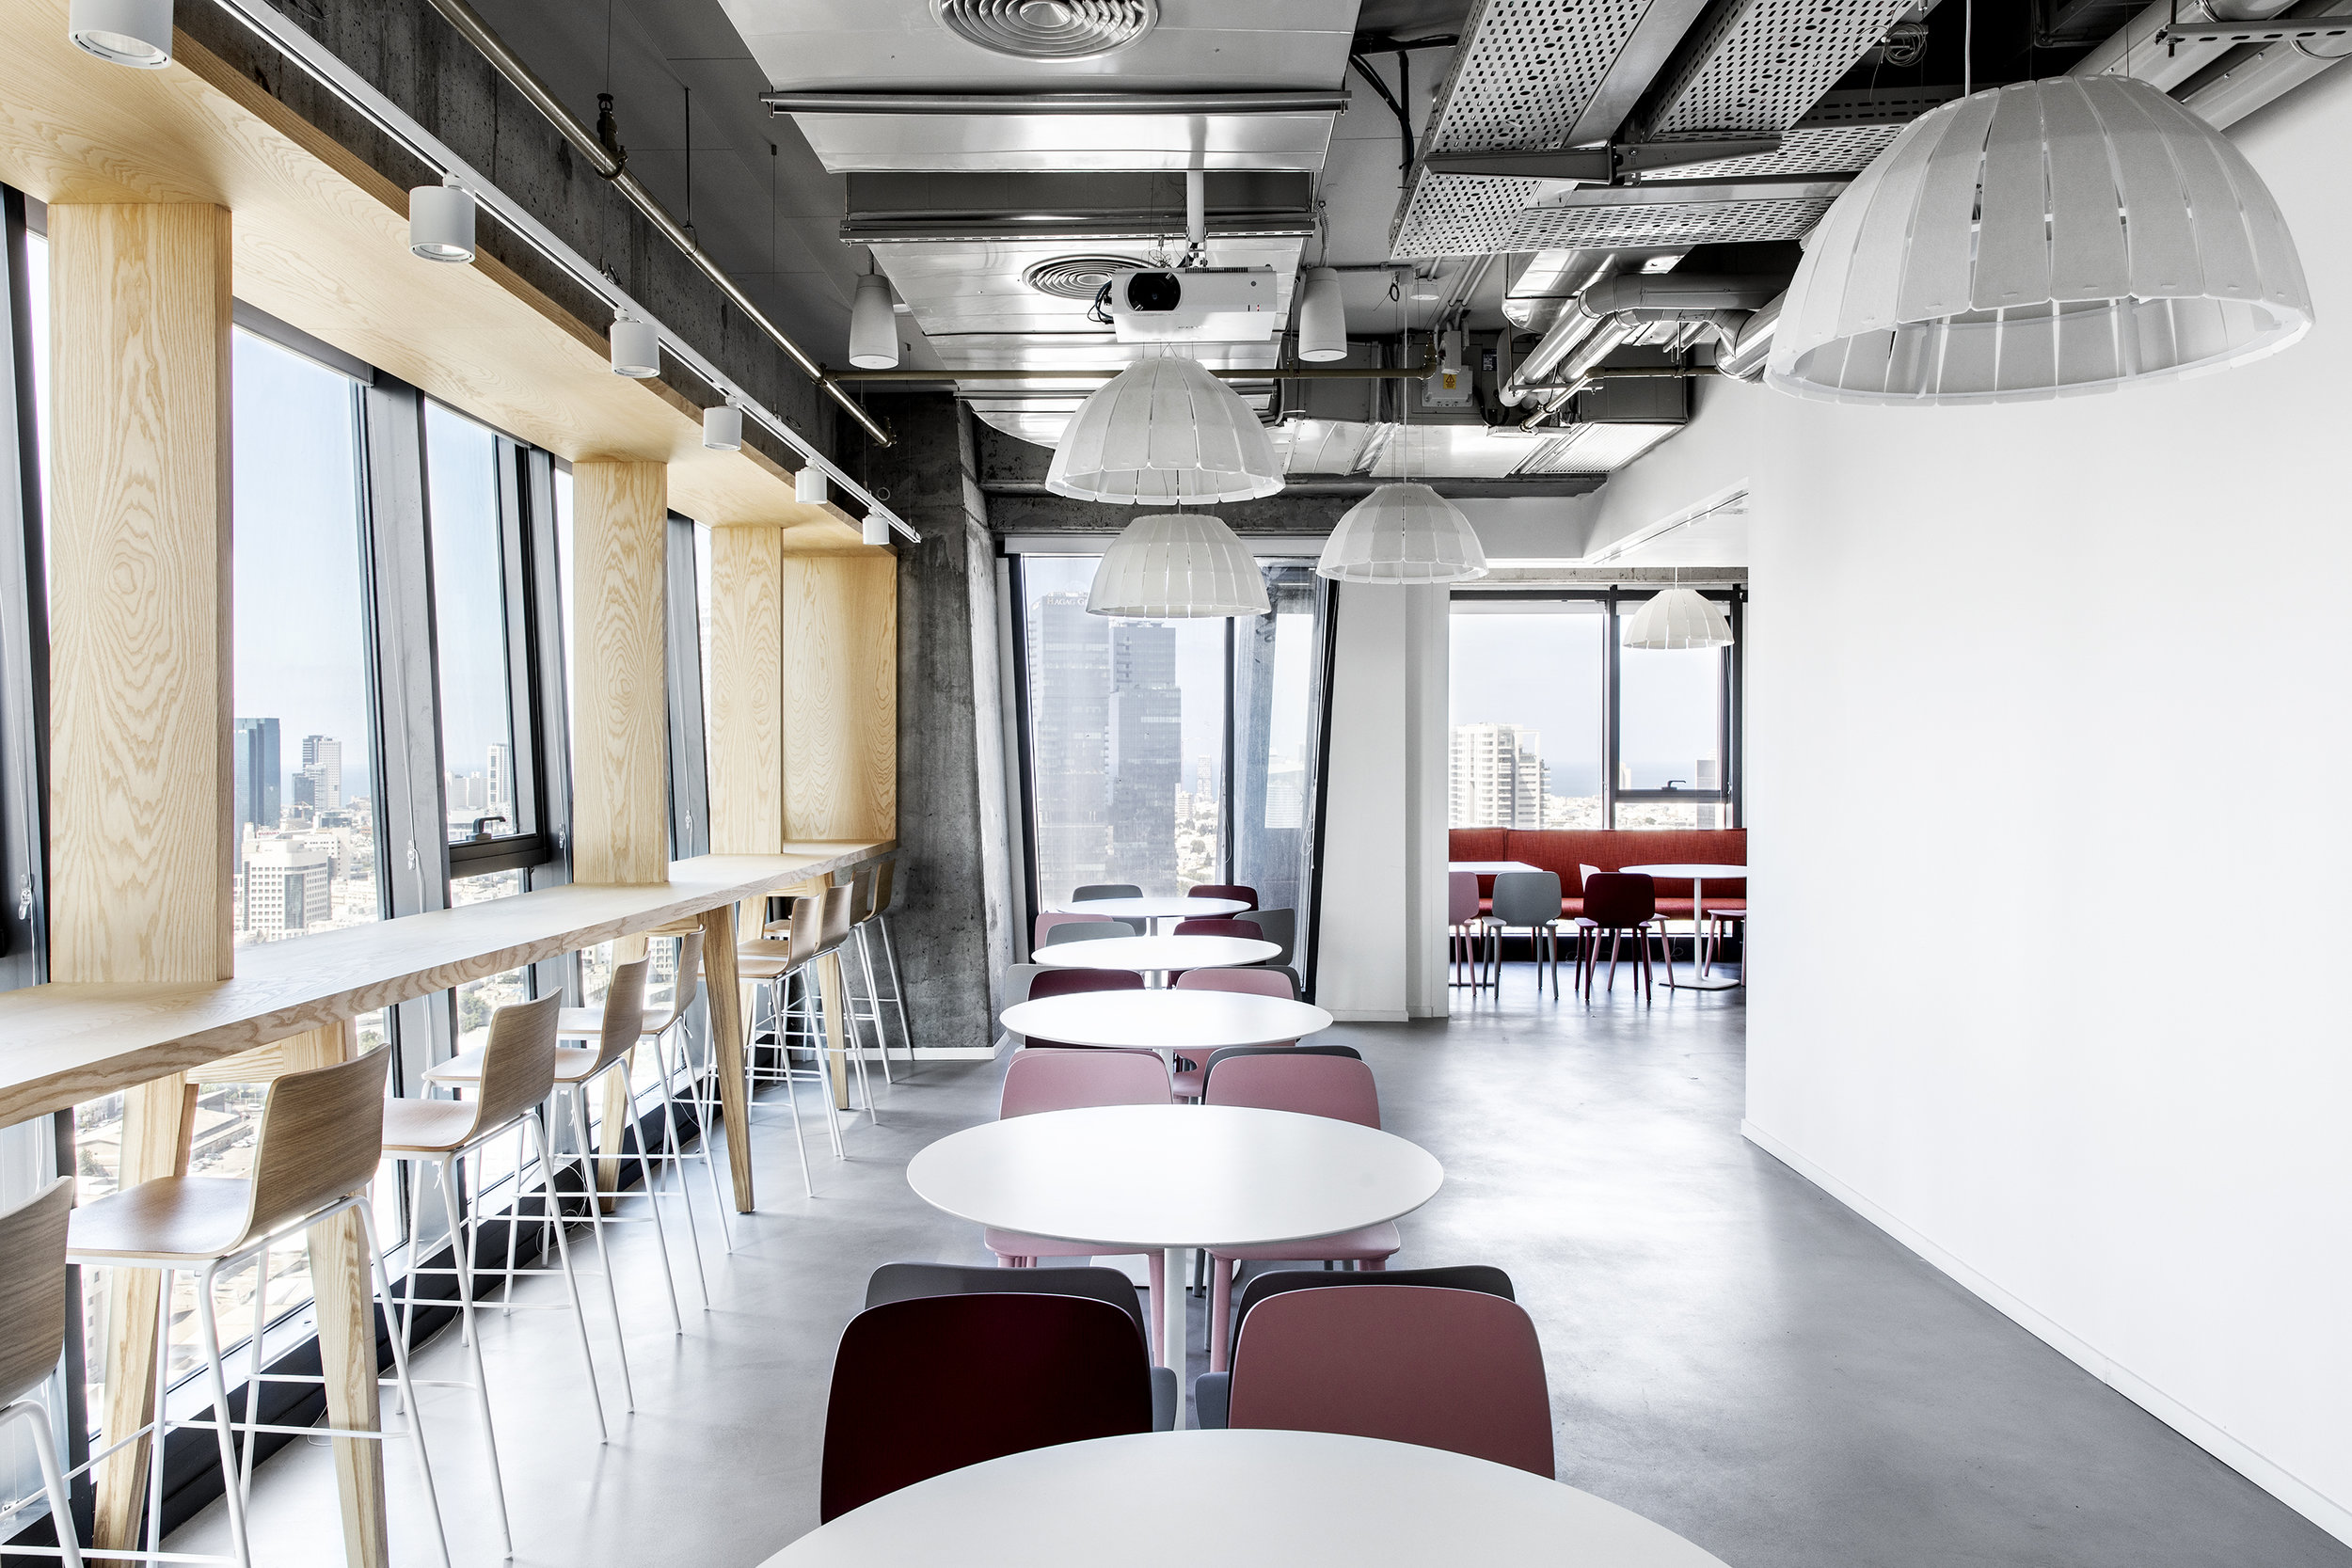 025_סטודיו רואי דוד - ROY DAVID ARCHITECTURE - NUVO OFFICES.jpg